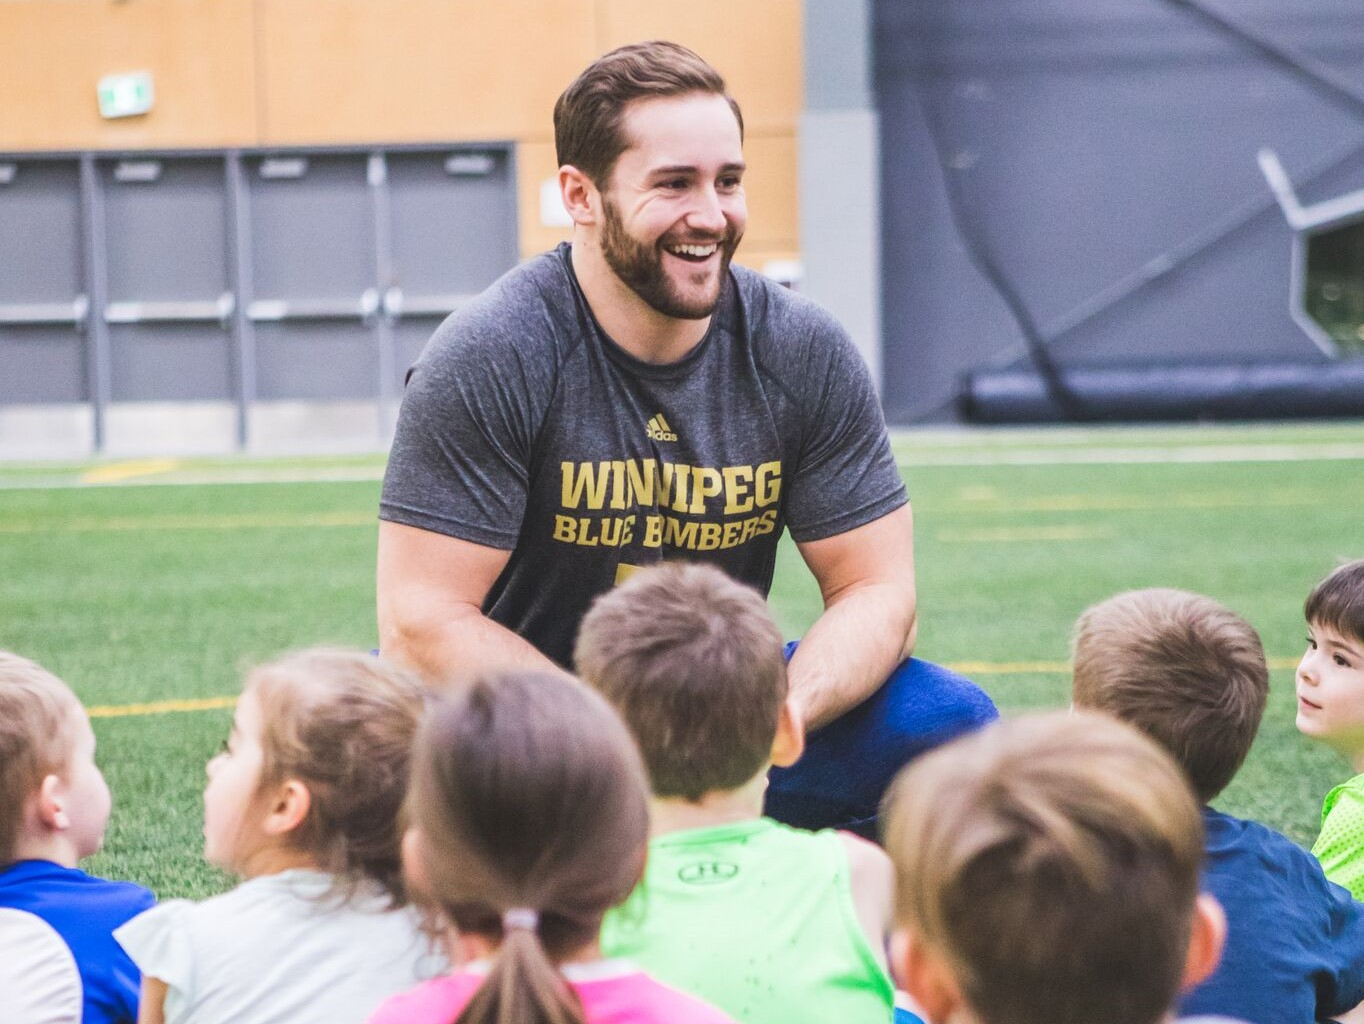 Thomas Miles talking with a group of children on a football field